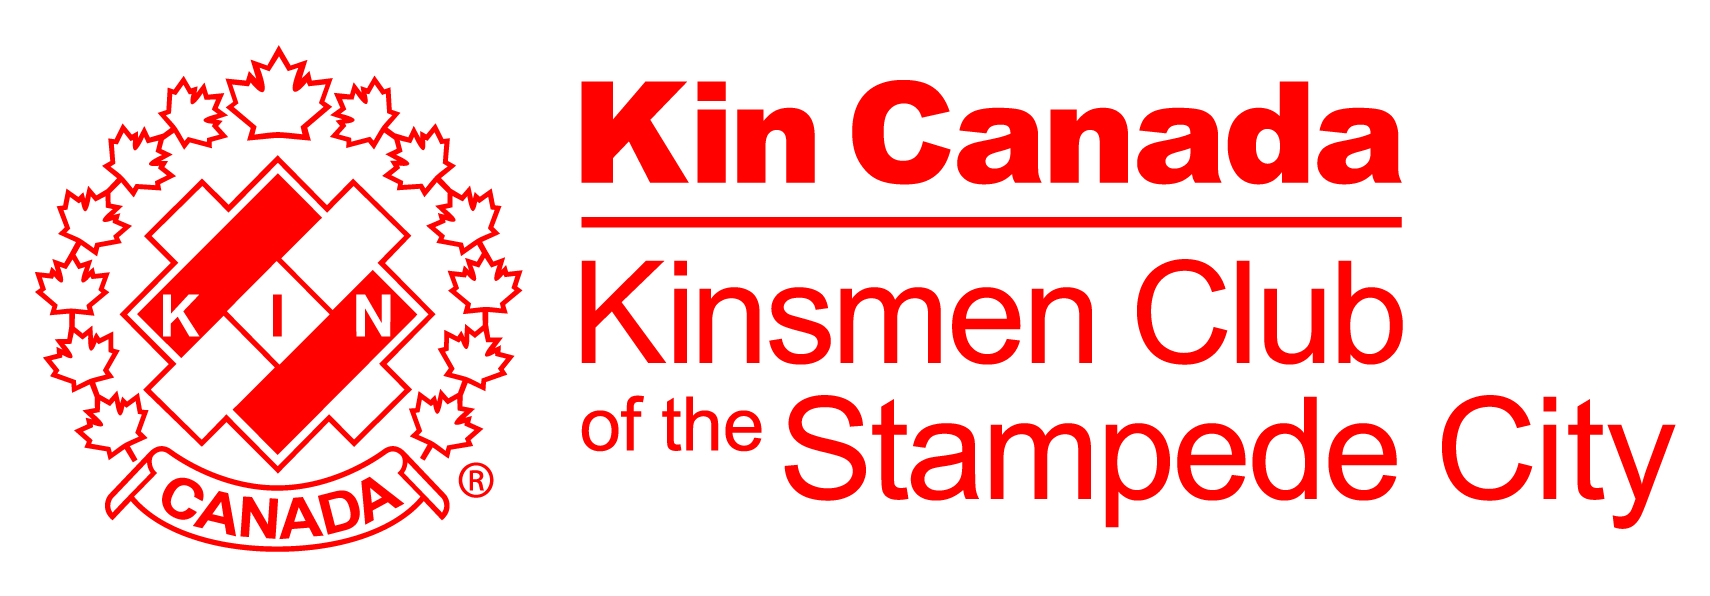 Kinsmen Club of the Stampede City Logo